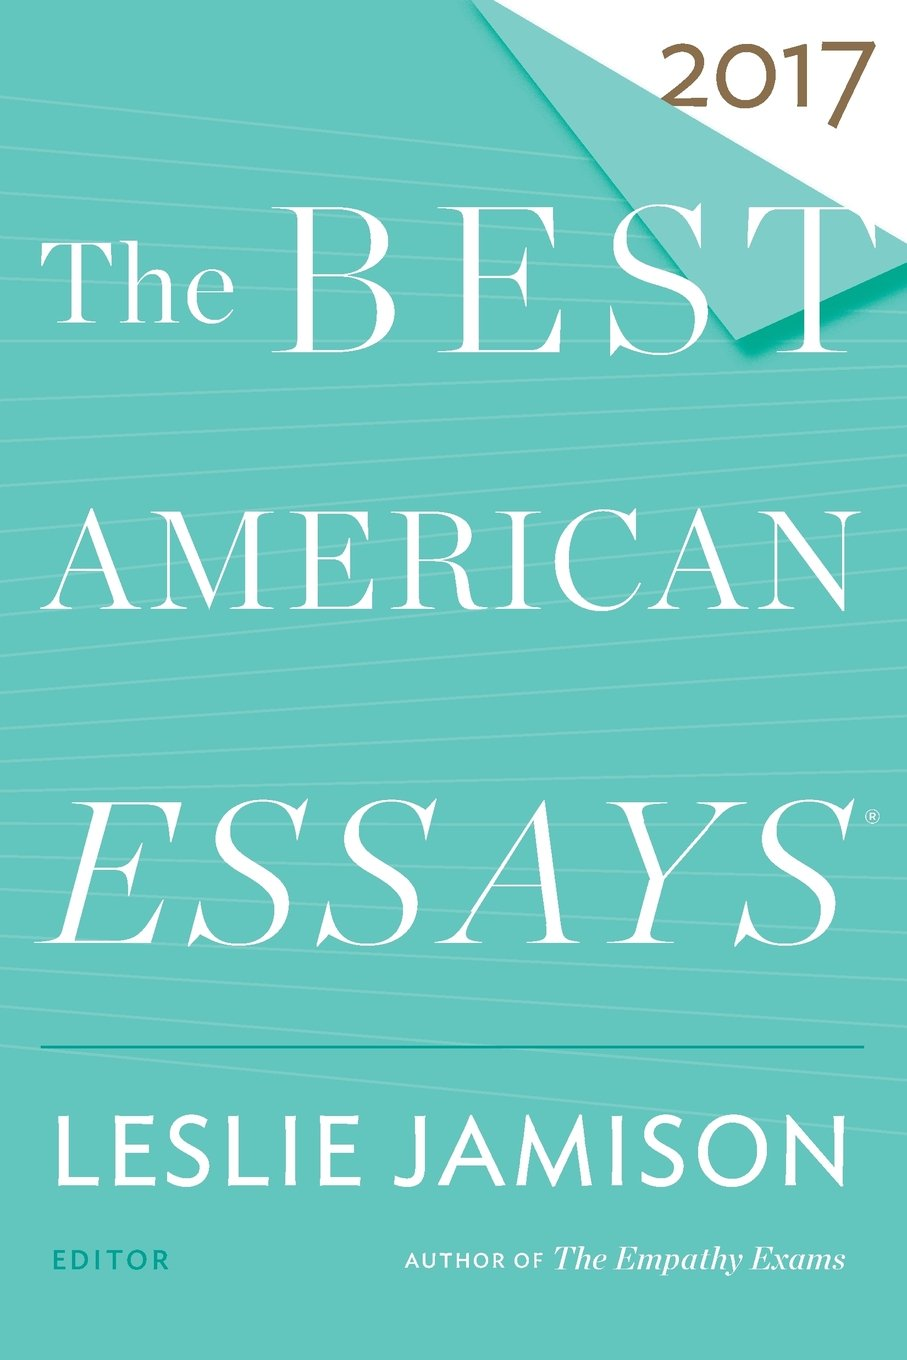 001 61tzl Nruvl Essay Example Best American Striking Essays 2017 Pdf Submissions 2019 Of The Century Table Contents Full